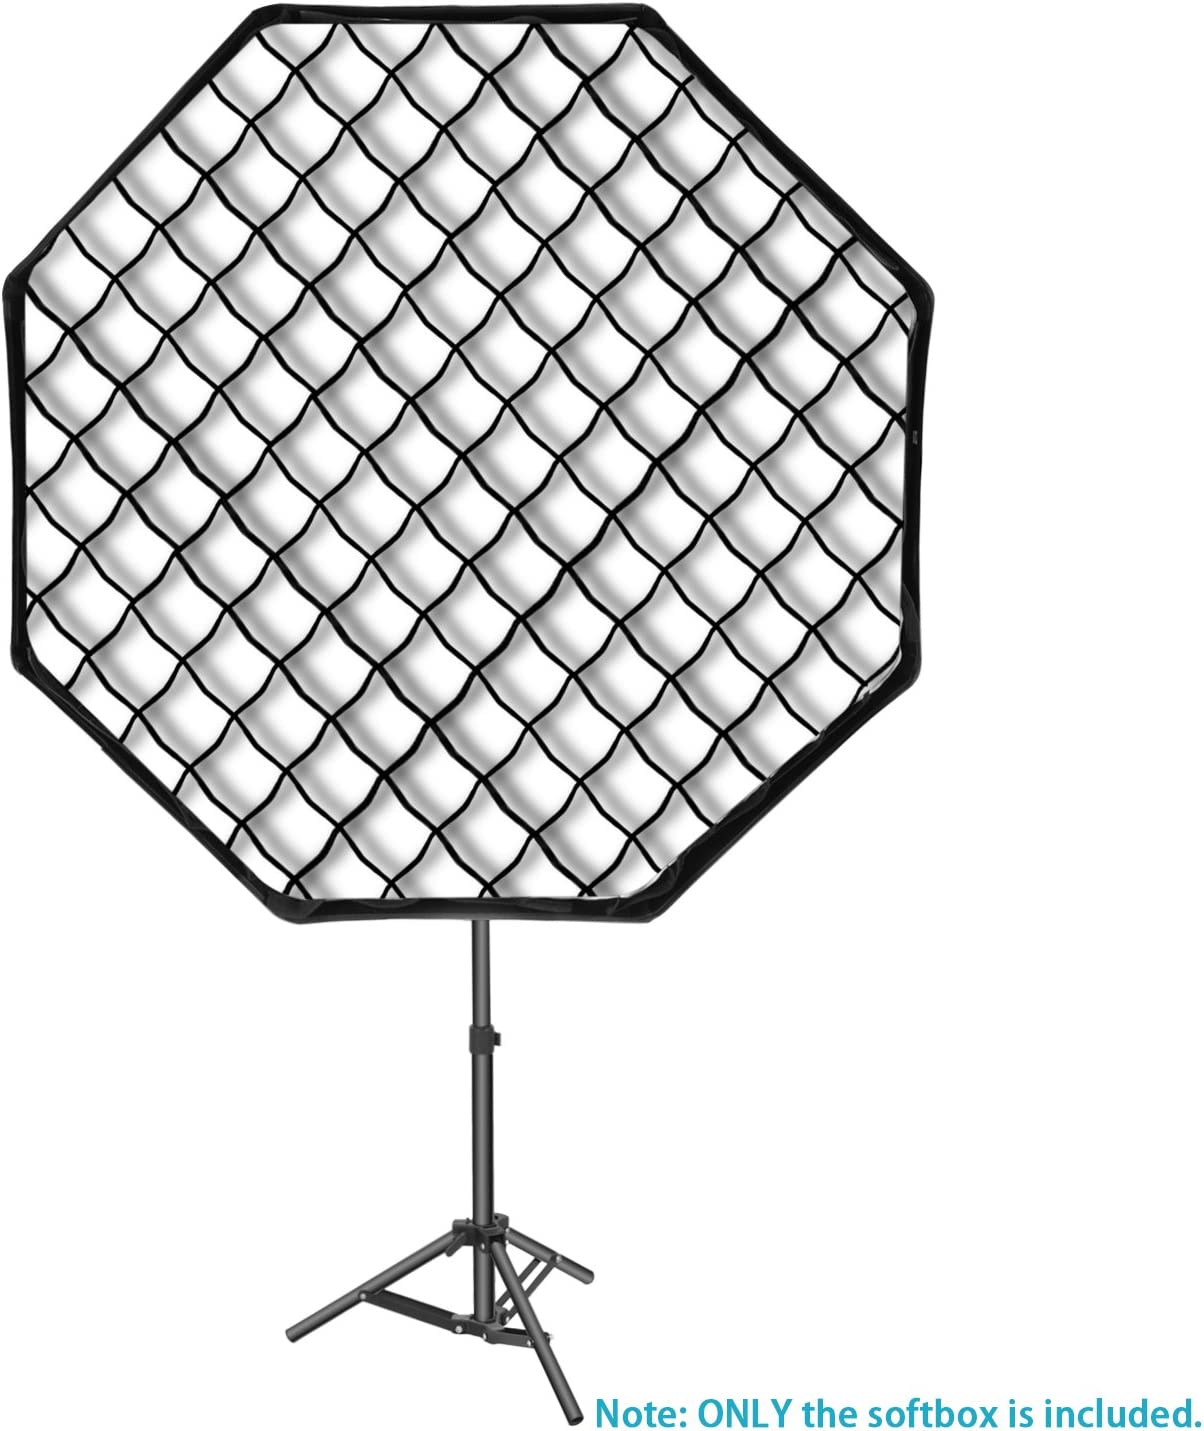 Neewer 32x32inches//80x80centimeters Octagon Flash Softbox with Grid and Bowens Mount Speedring Compatible with Nikon Canon Sony Pentax Olympus Panasonic Lumix Neewer Flash